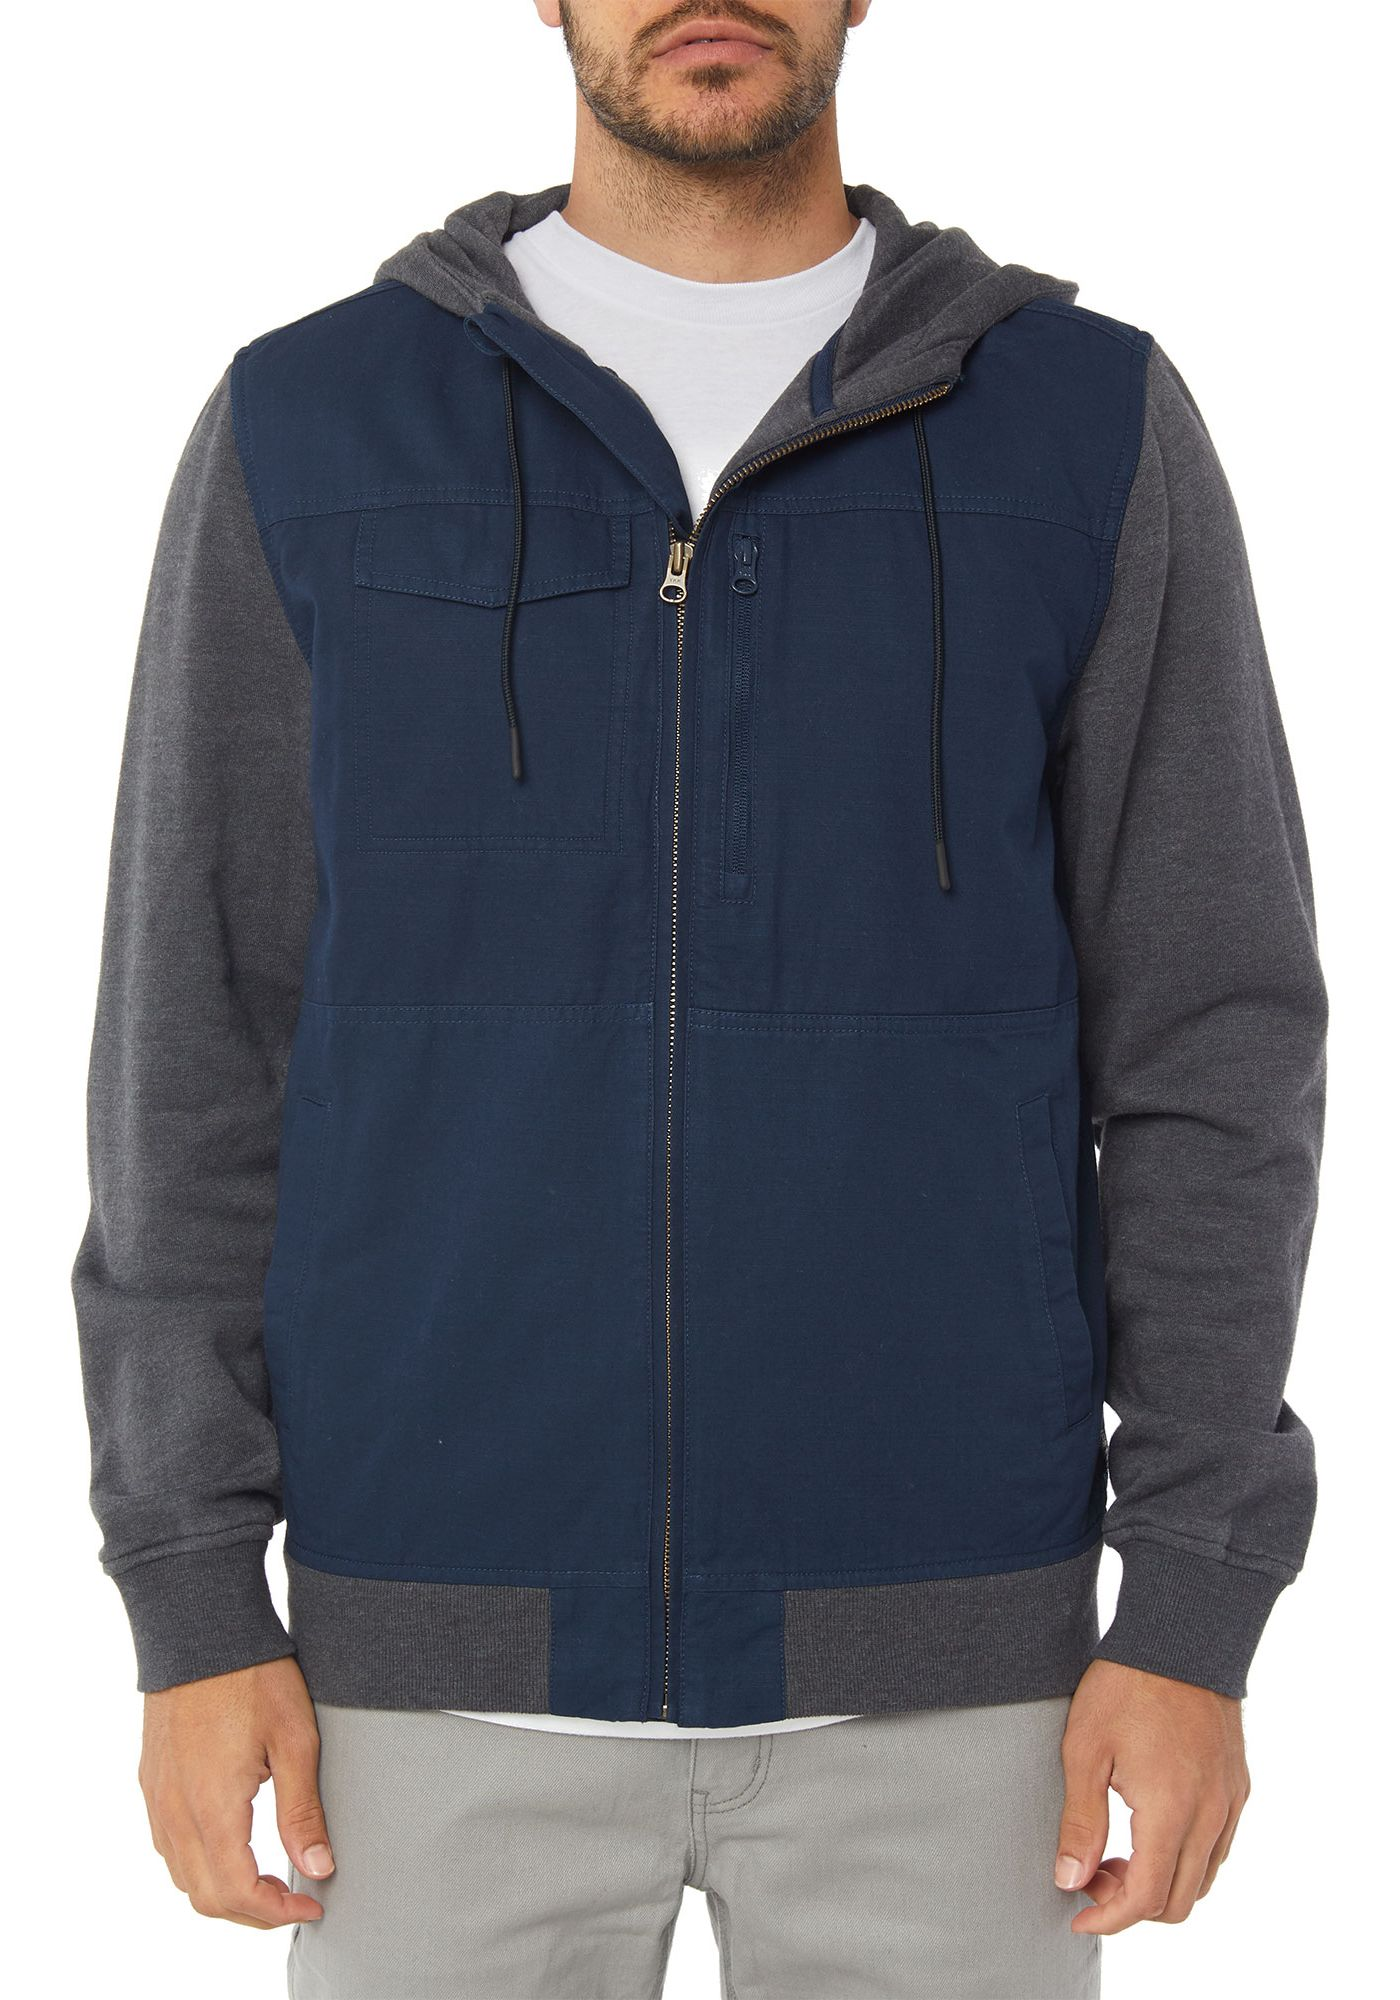 O'Neill Men's Calgary Fleece Jacket